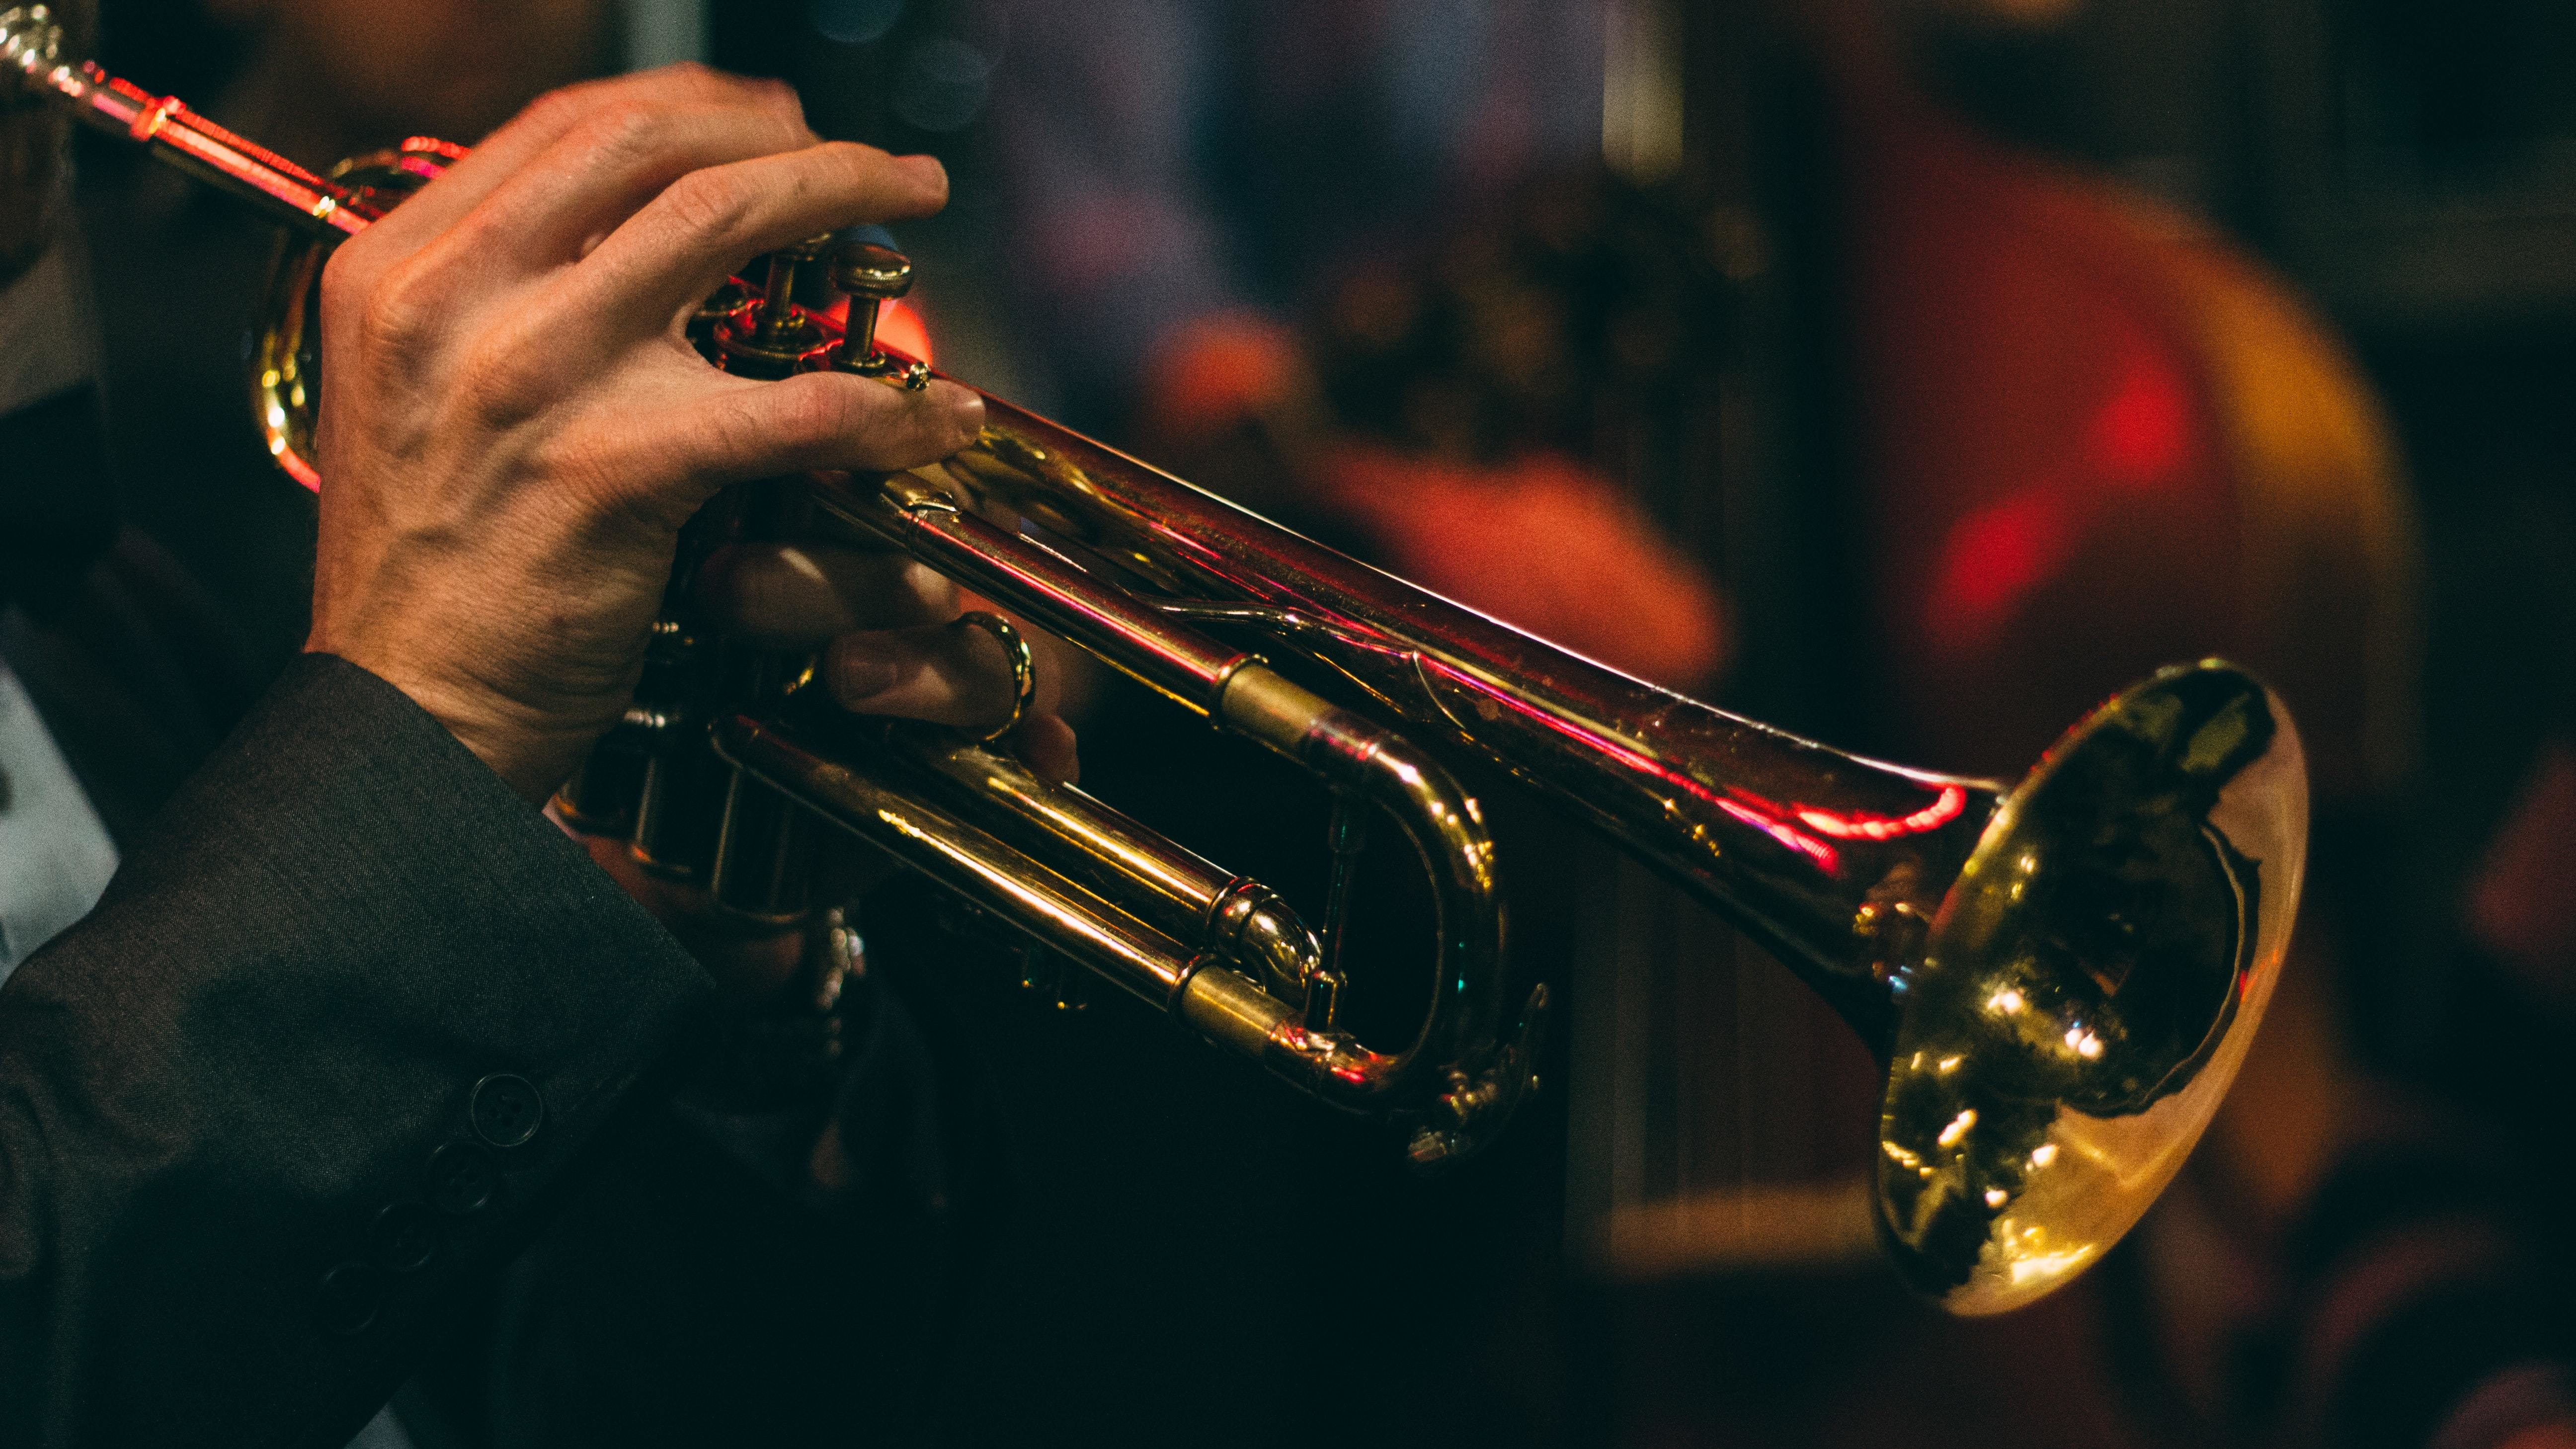 this is someone playing jazz on a trumpet. Jazz music is something that would be challenging for artificial intelligence to replicate, due to its often spontaneous nature